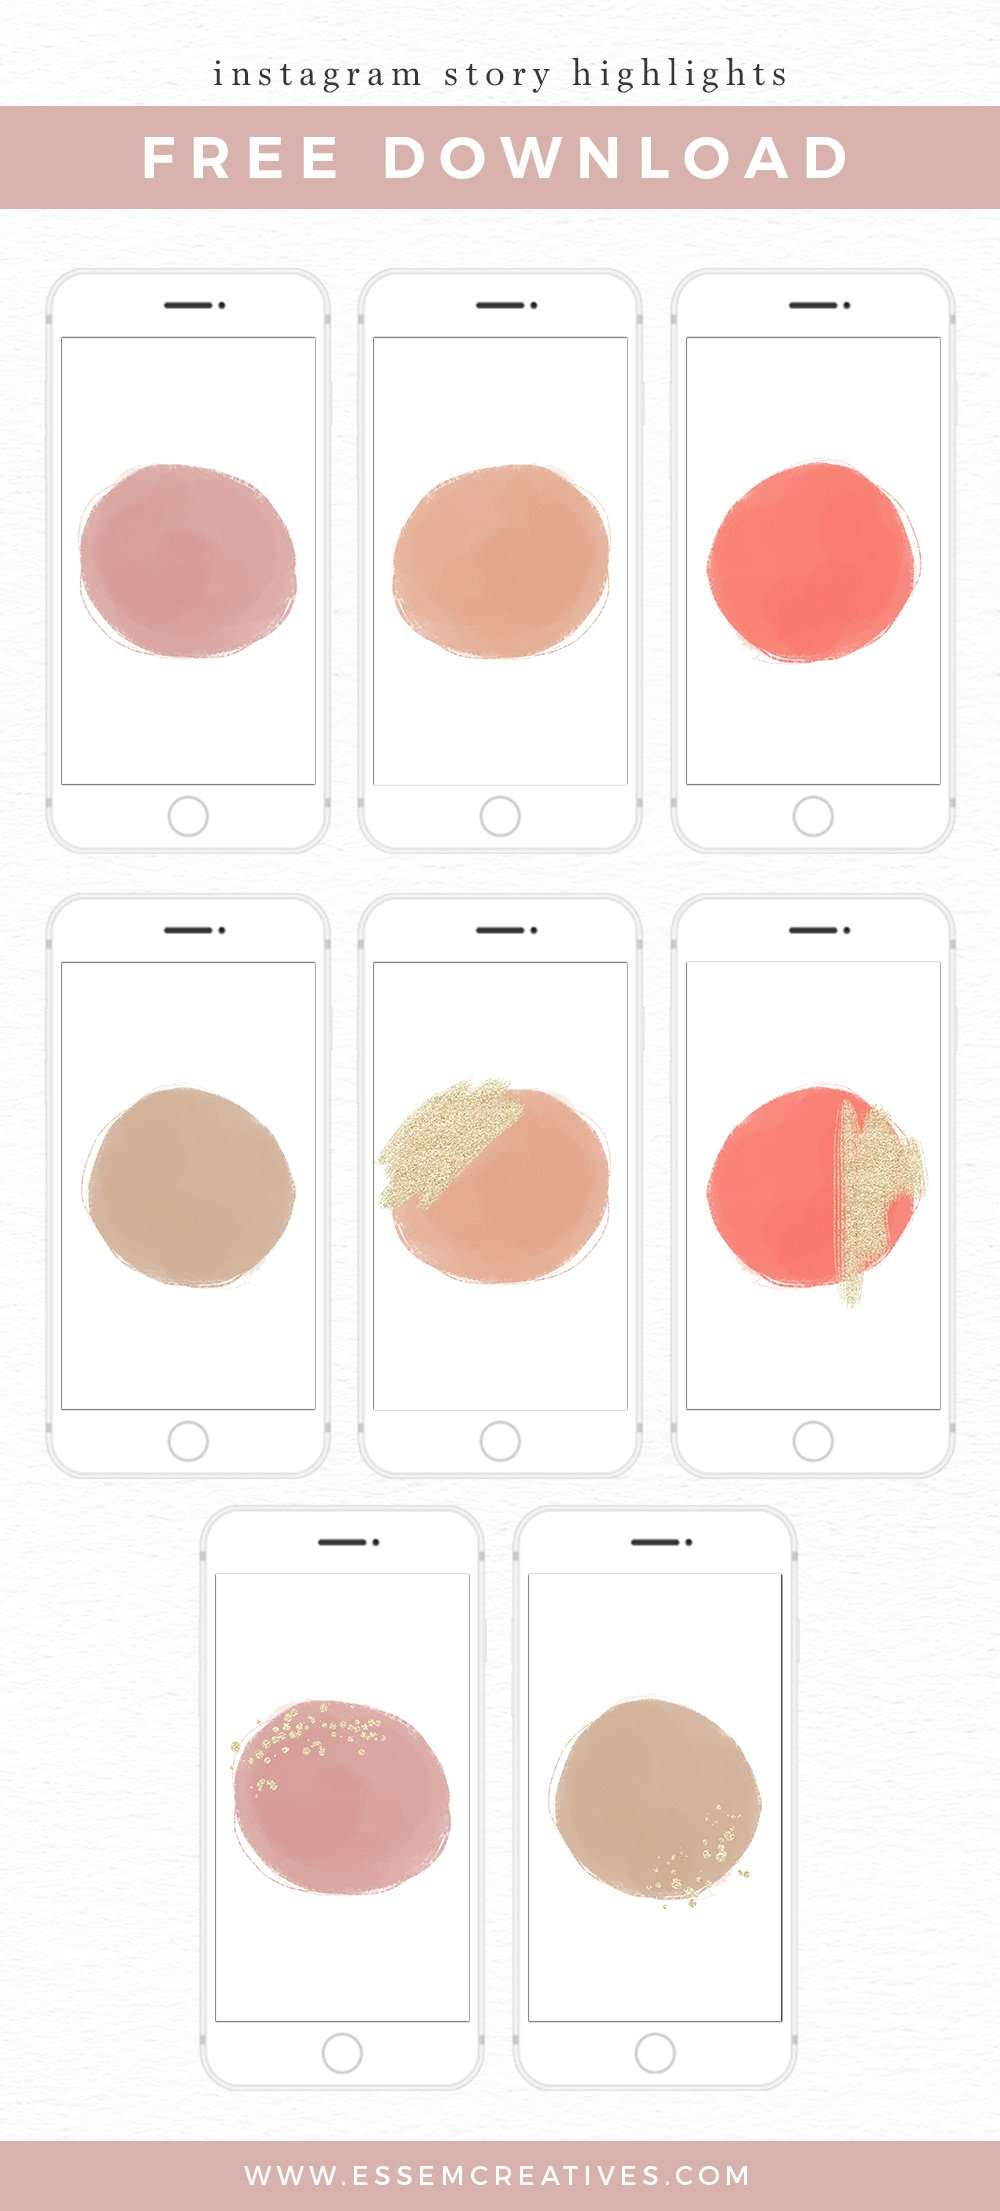 Free Instagram Story Highlight Covers Pack Download - Neutral Watercolors | Instagram Branding kit, Instagram Story Highlights, Instagram Neutral Blush Branding Kit | Use these free Insta highlight covers to add a touch of sophisticated whimsy to your Instagram account. Click to get it>>